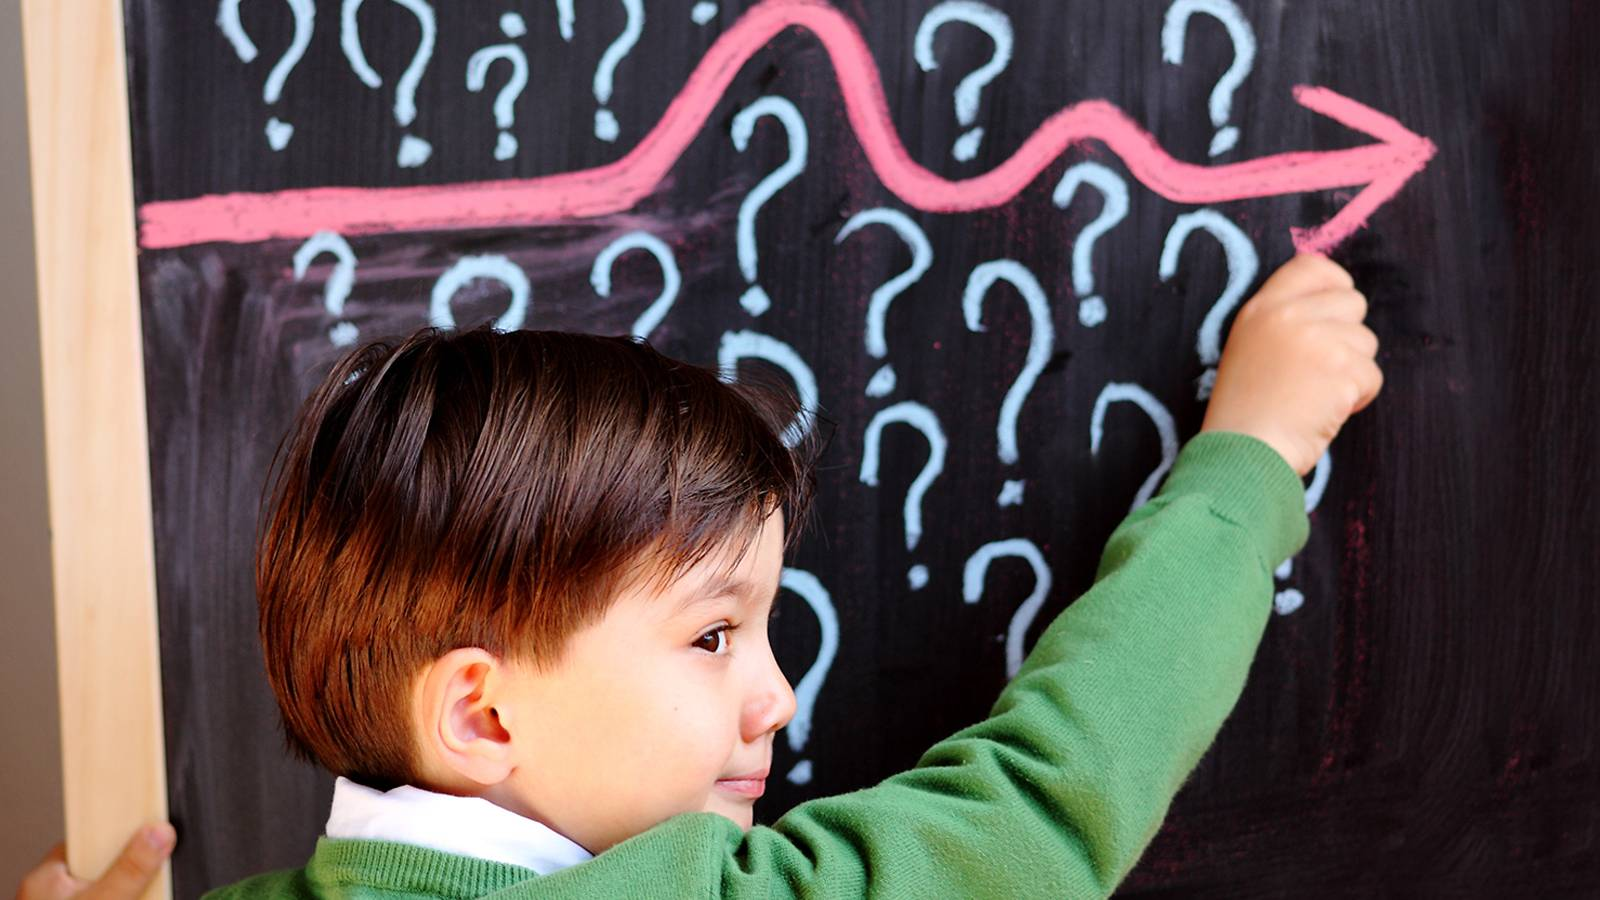 Kids-4-money-questions-junior-will-ask-and-how-to-answer-them-2